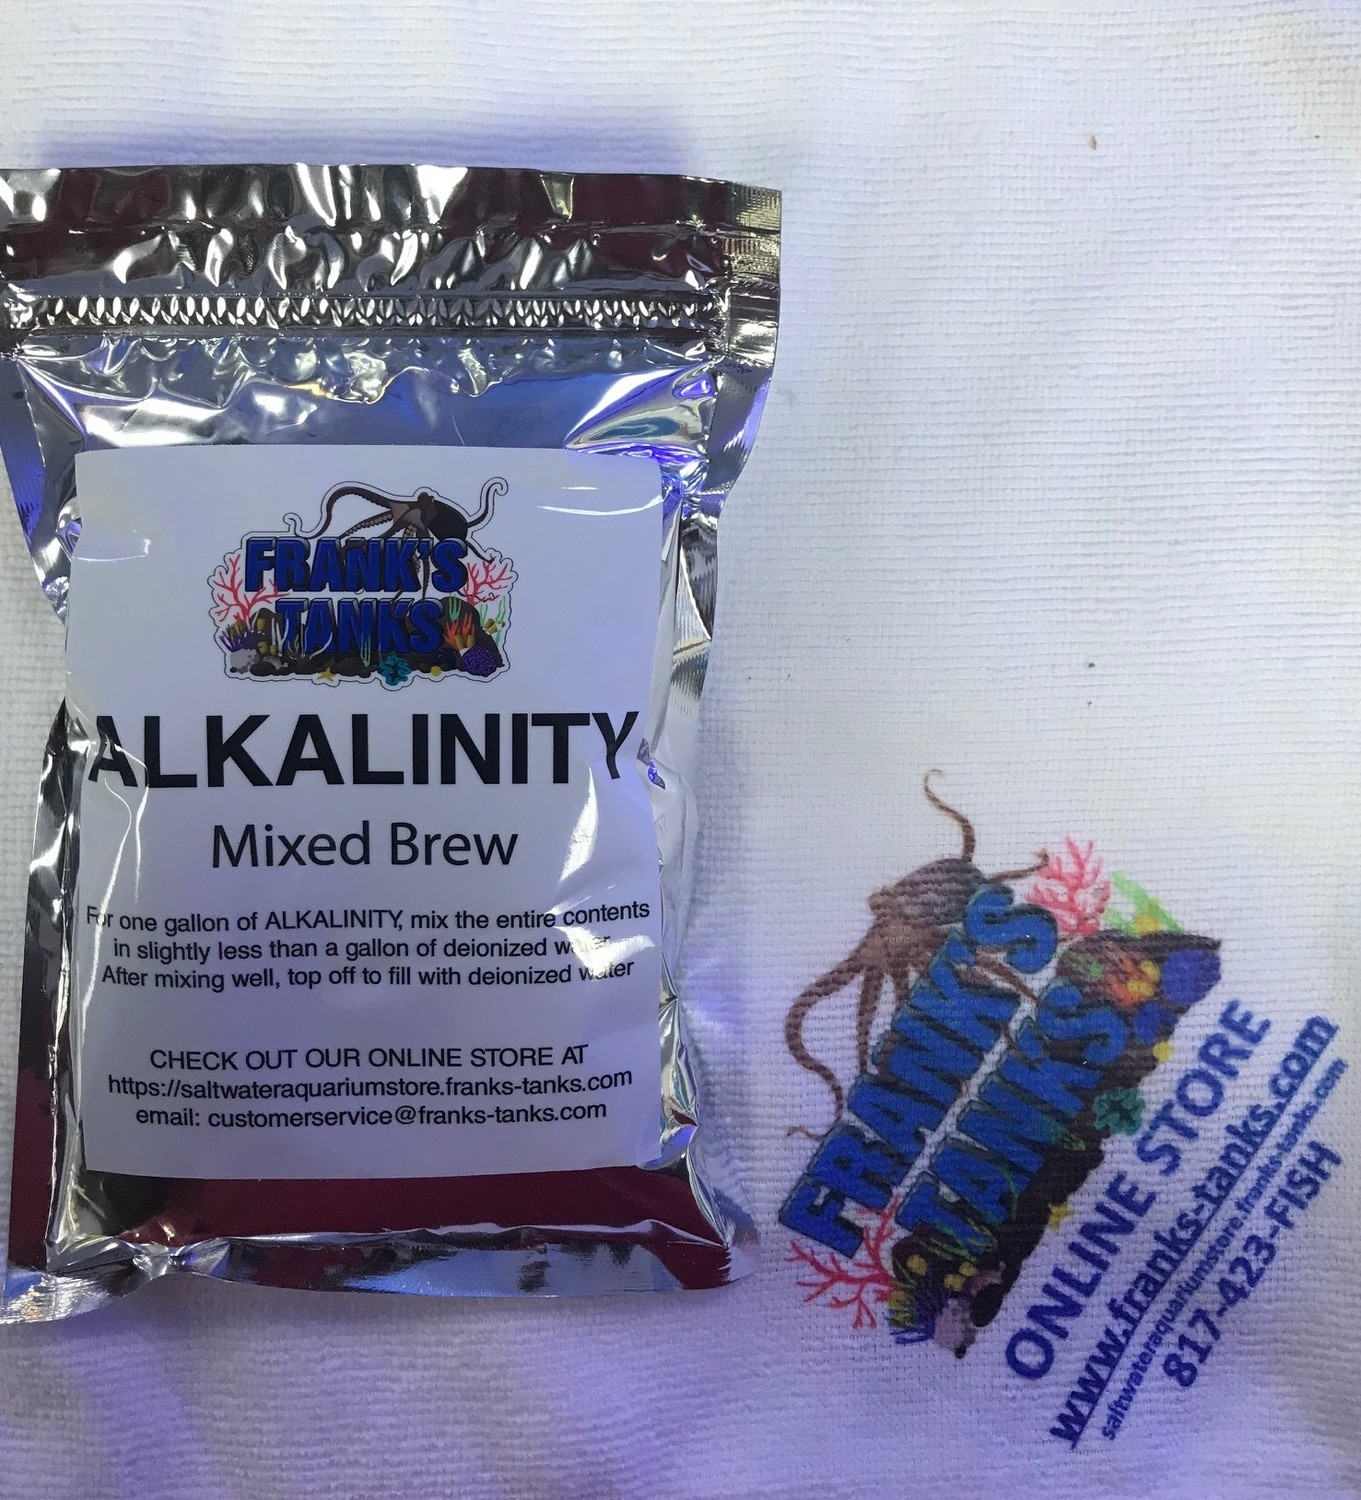 Frank's Tanks 1 gallon mix package of ( Alkalinity ) Mixed Brew